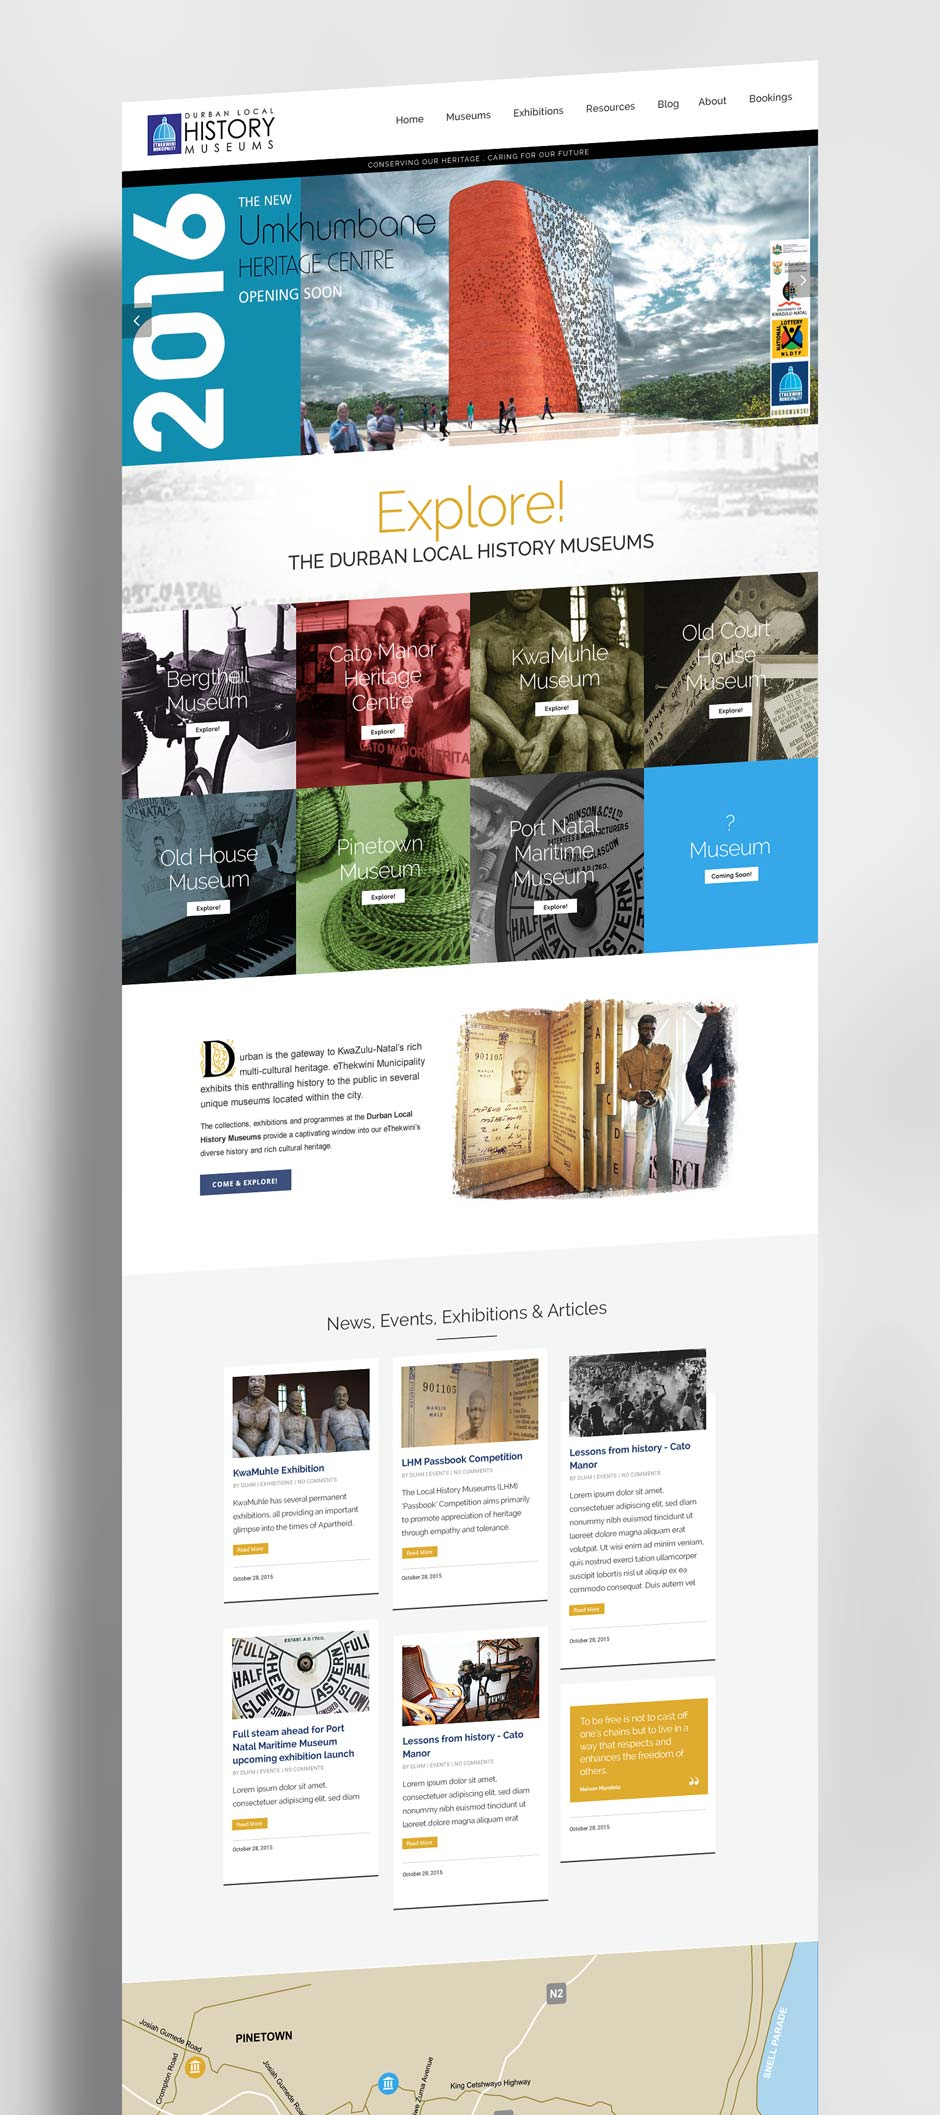 DLHM - Durban Local Histroy Museums Website - Home Page Design Mock-Up